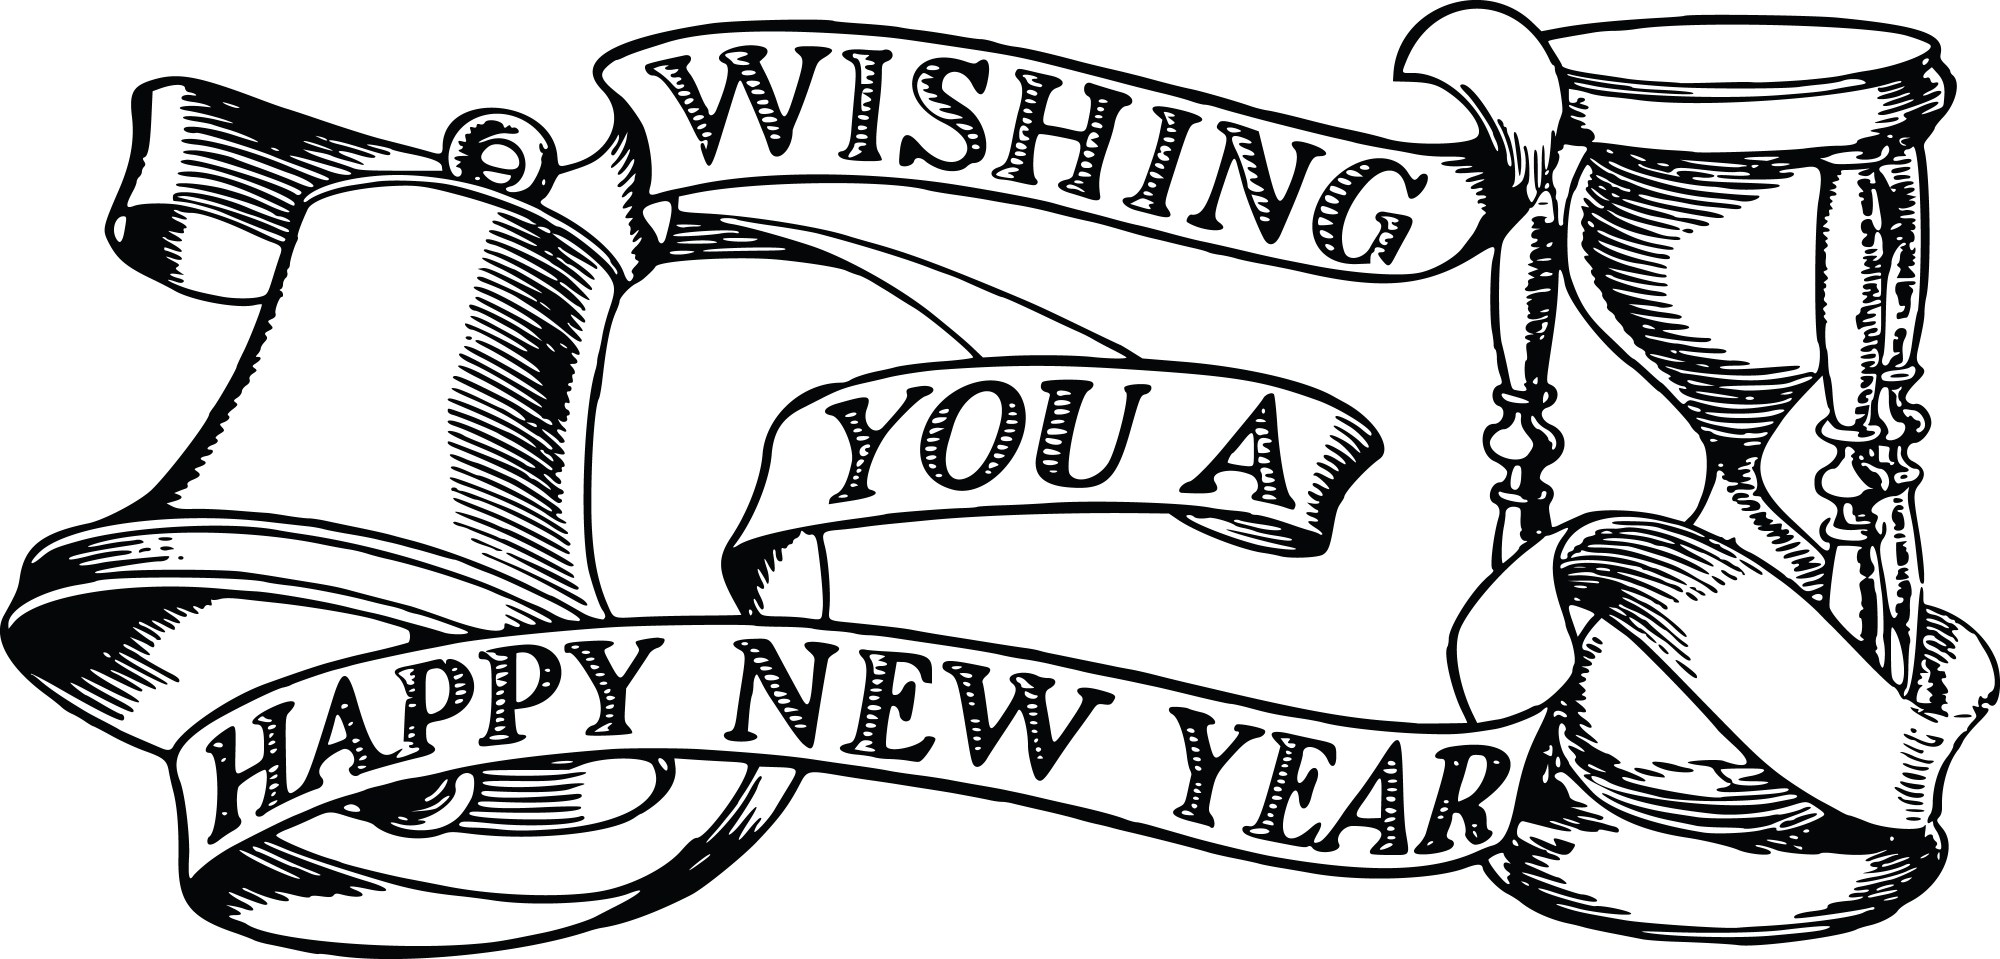 hight resolution of free clipart of a bell hourglass and happy new year banner 00011822